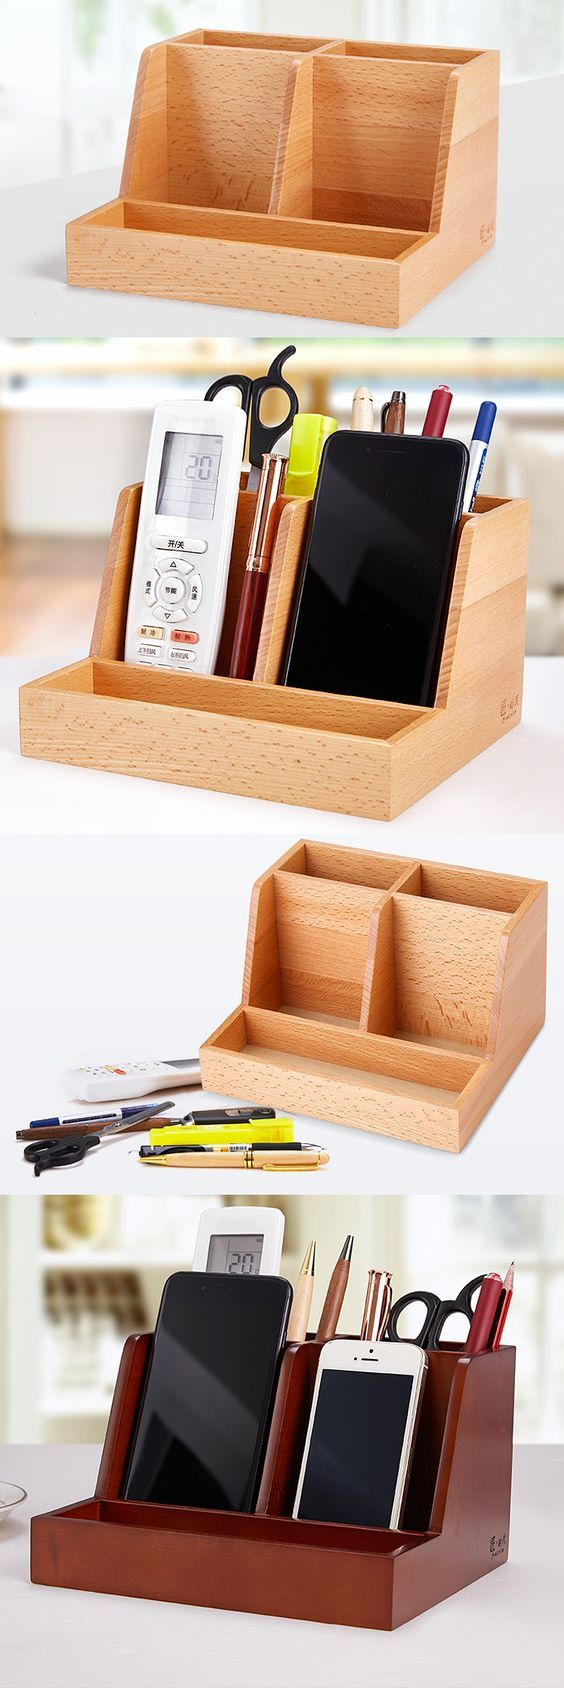 Wood Business Card Holder Office Desk Wooden Photo Stand Name Memo Organizer